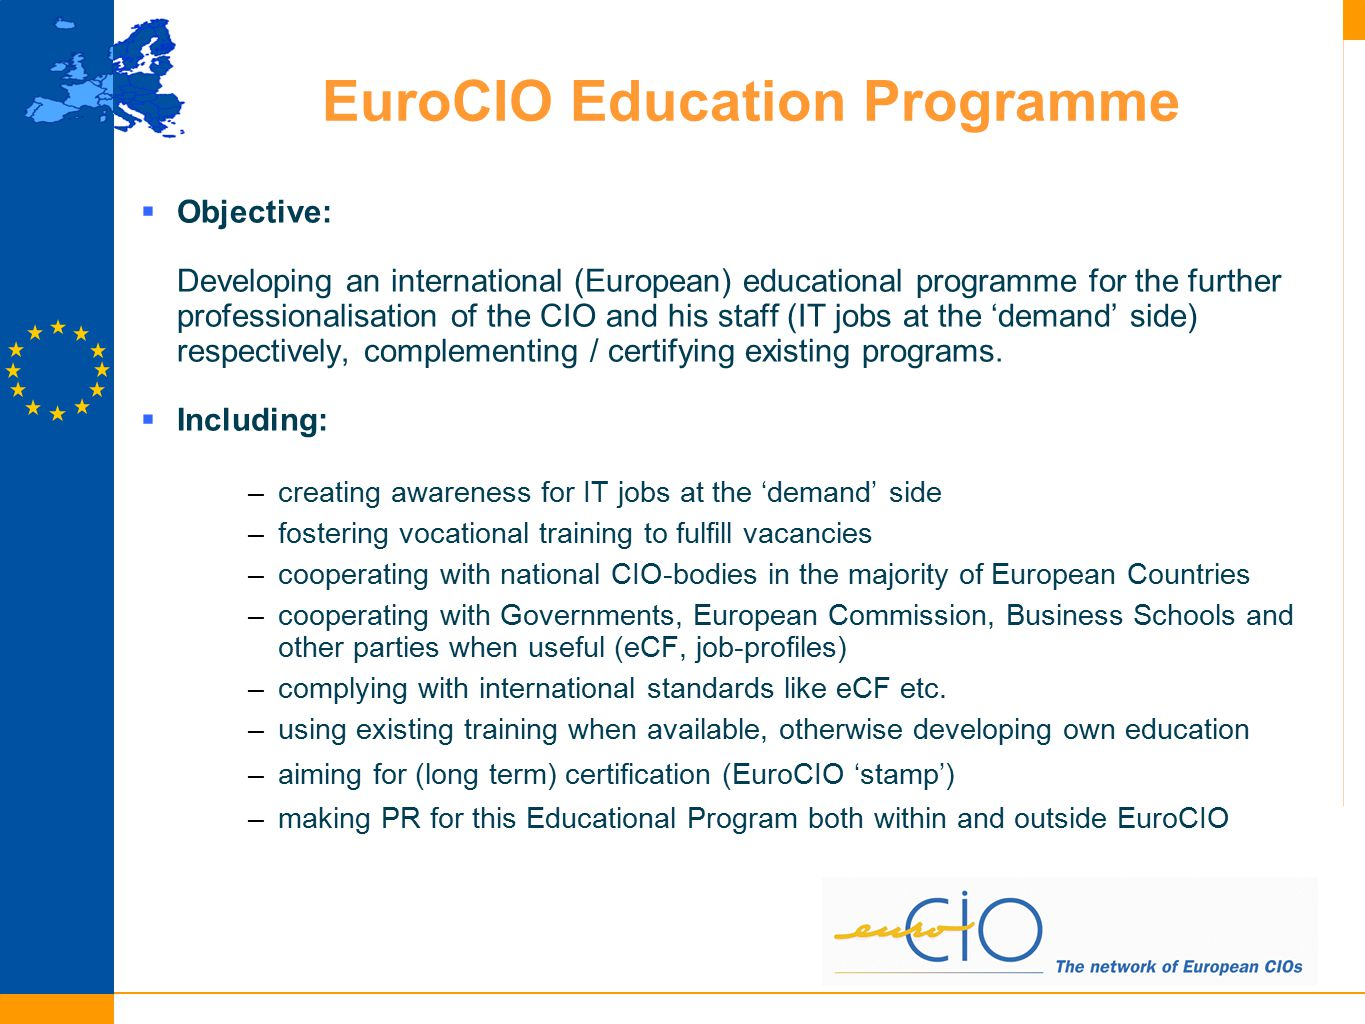  Objective: Developing an international (European) educational programme for the further professionalisation of the CIO and his staff (IT jobs at the 'demand' side) respectively, complementing / certifying existing programs.